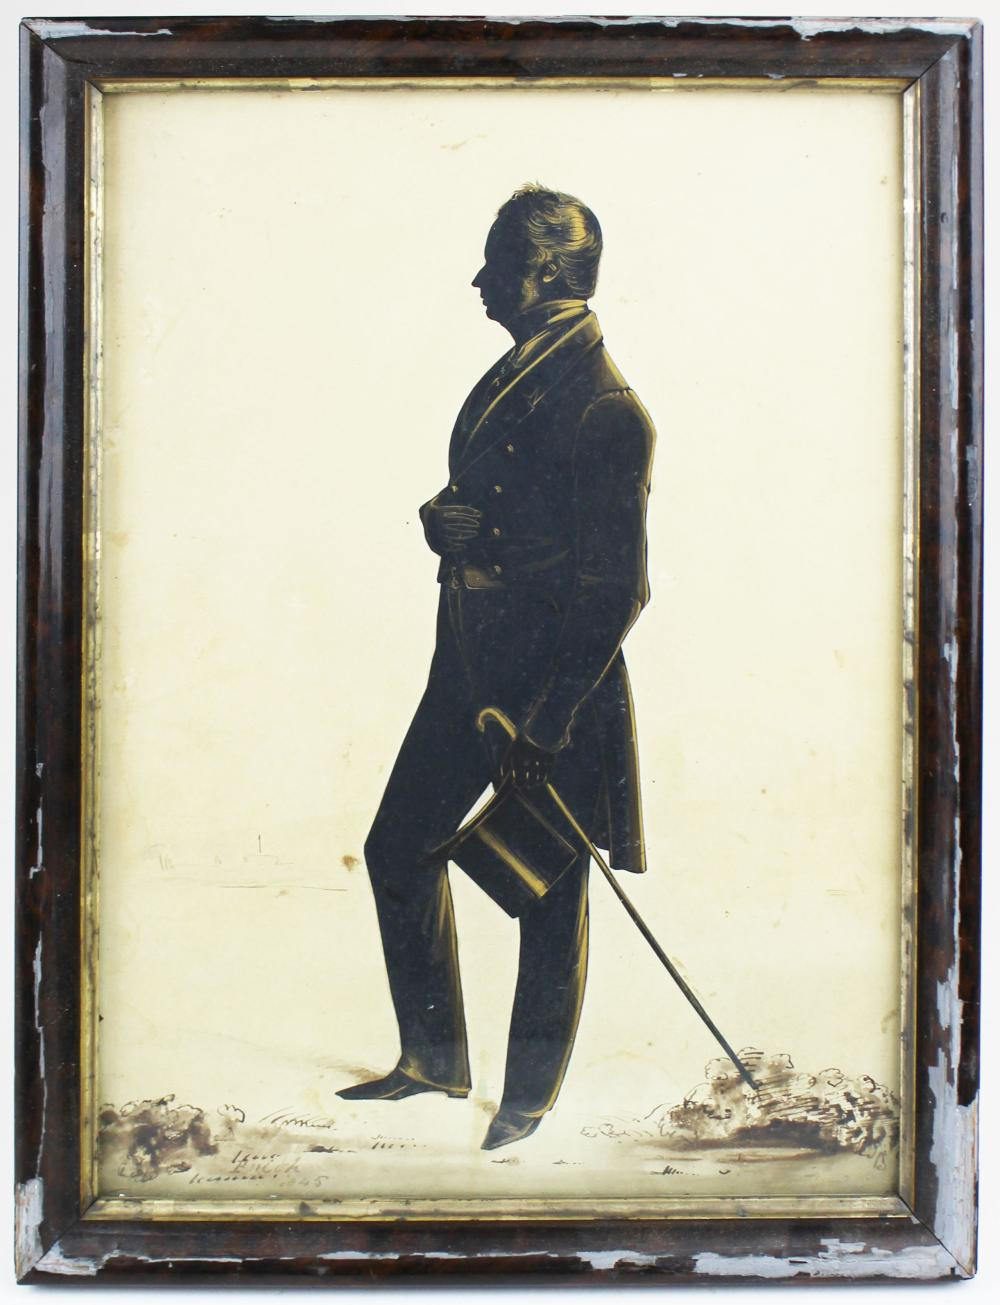 1845 English watercolor silhouette signed Frith